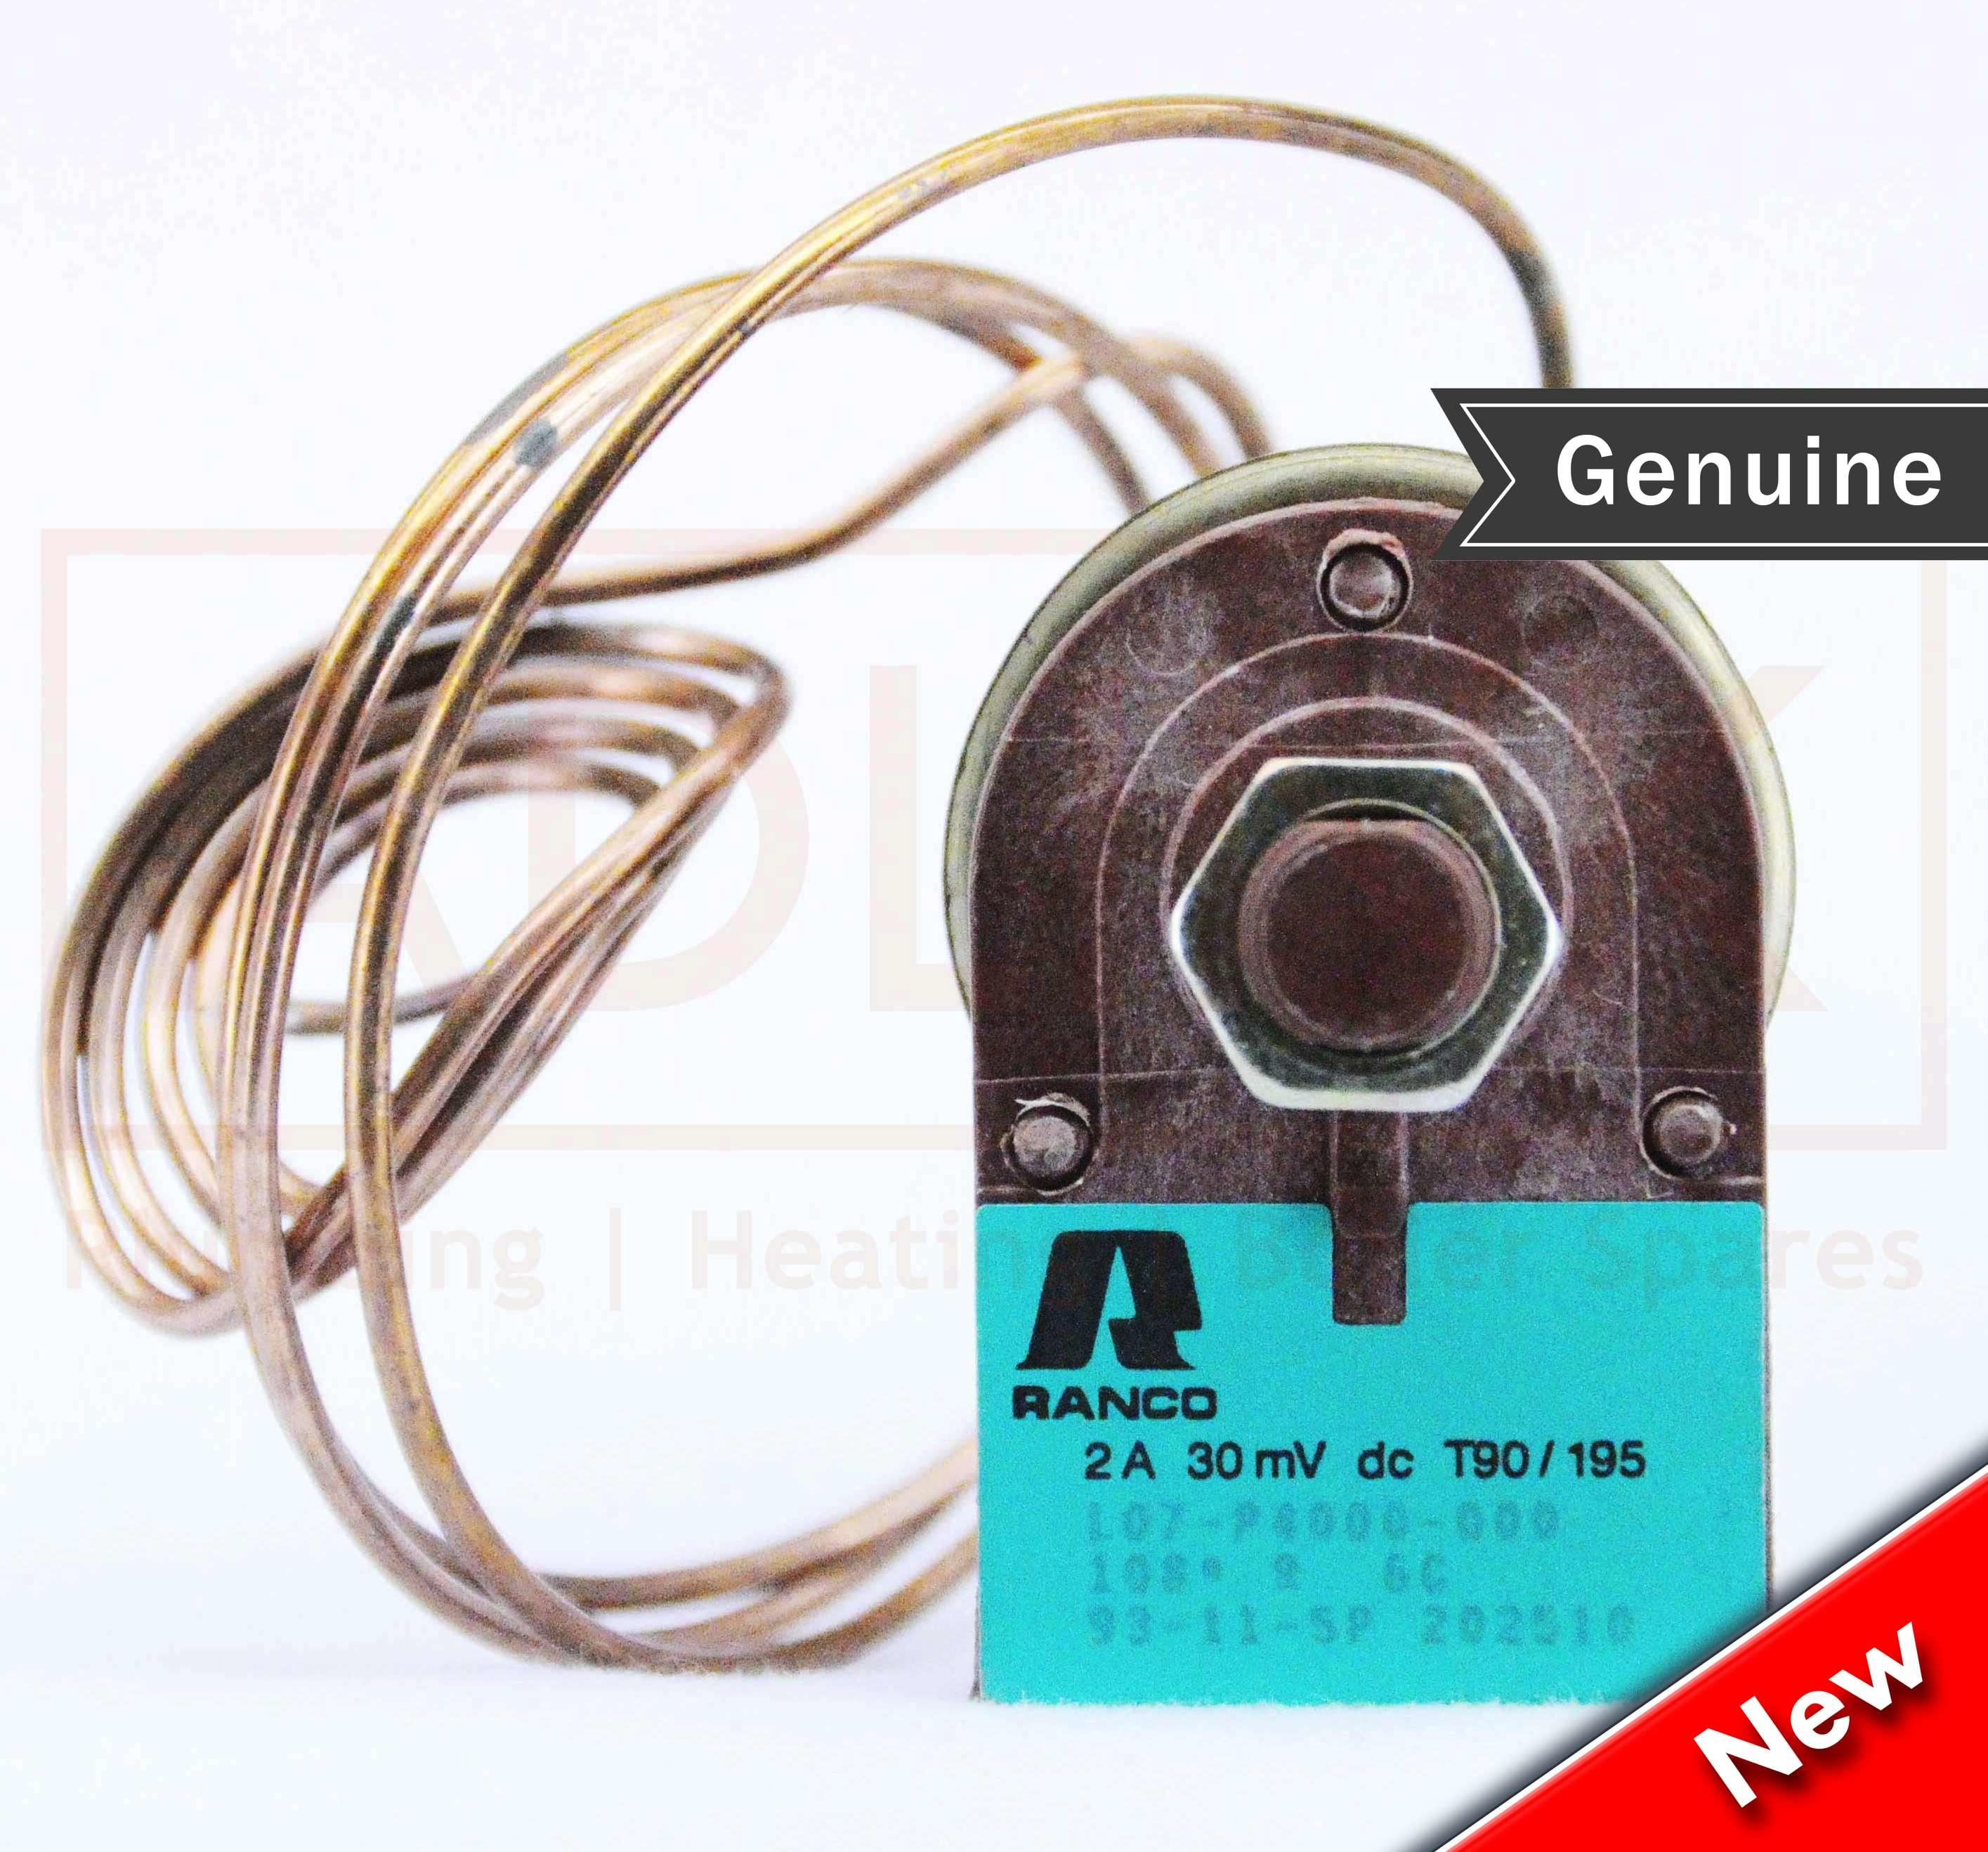 Pressure Sensor Circuit 8 10 From 47 Votes Pressure Sensor Circuit 9